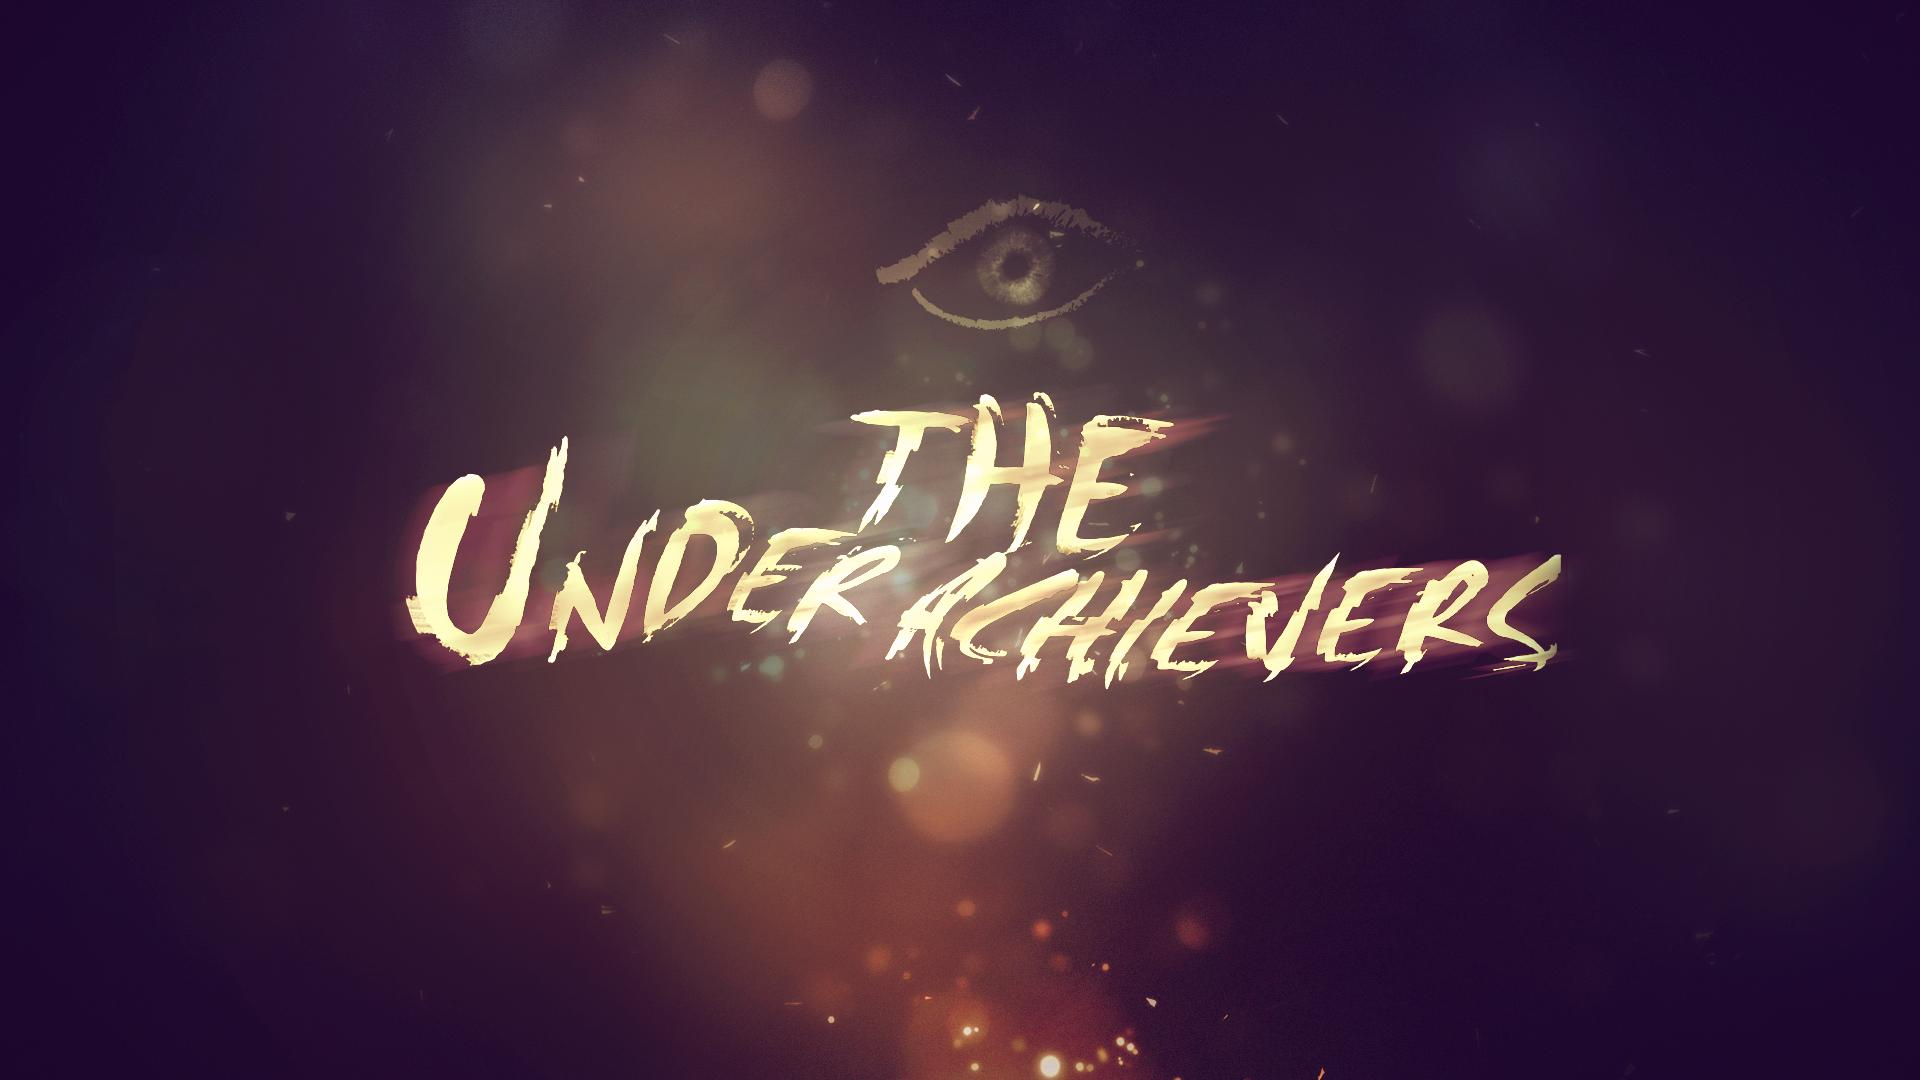 1920x1080 Flatbush Zombies or The Underachievers wallpapers? : hiphopheads